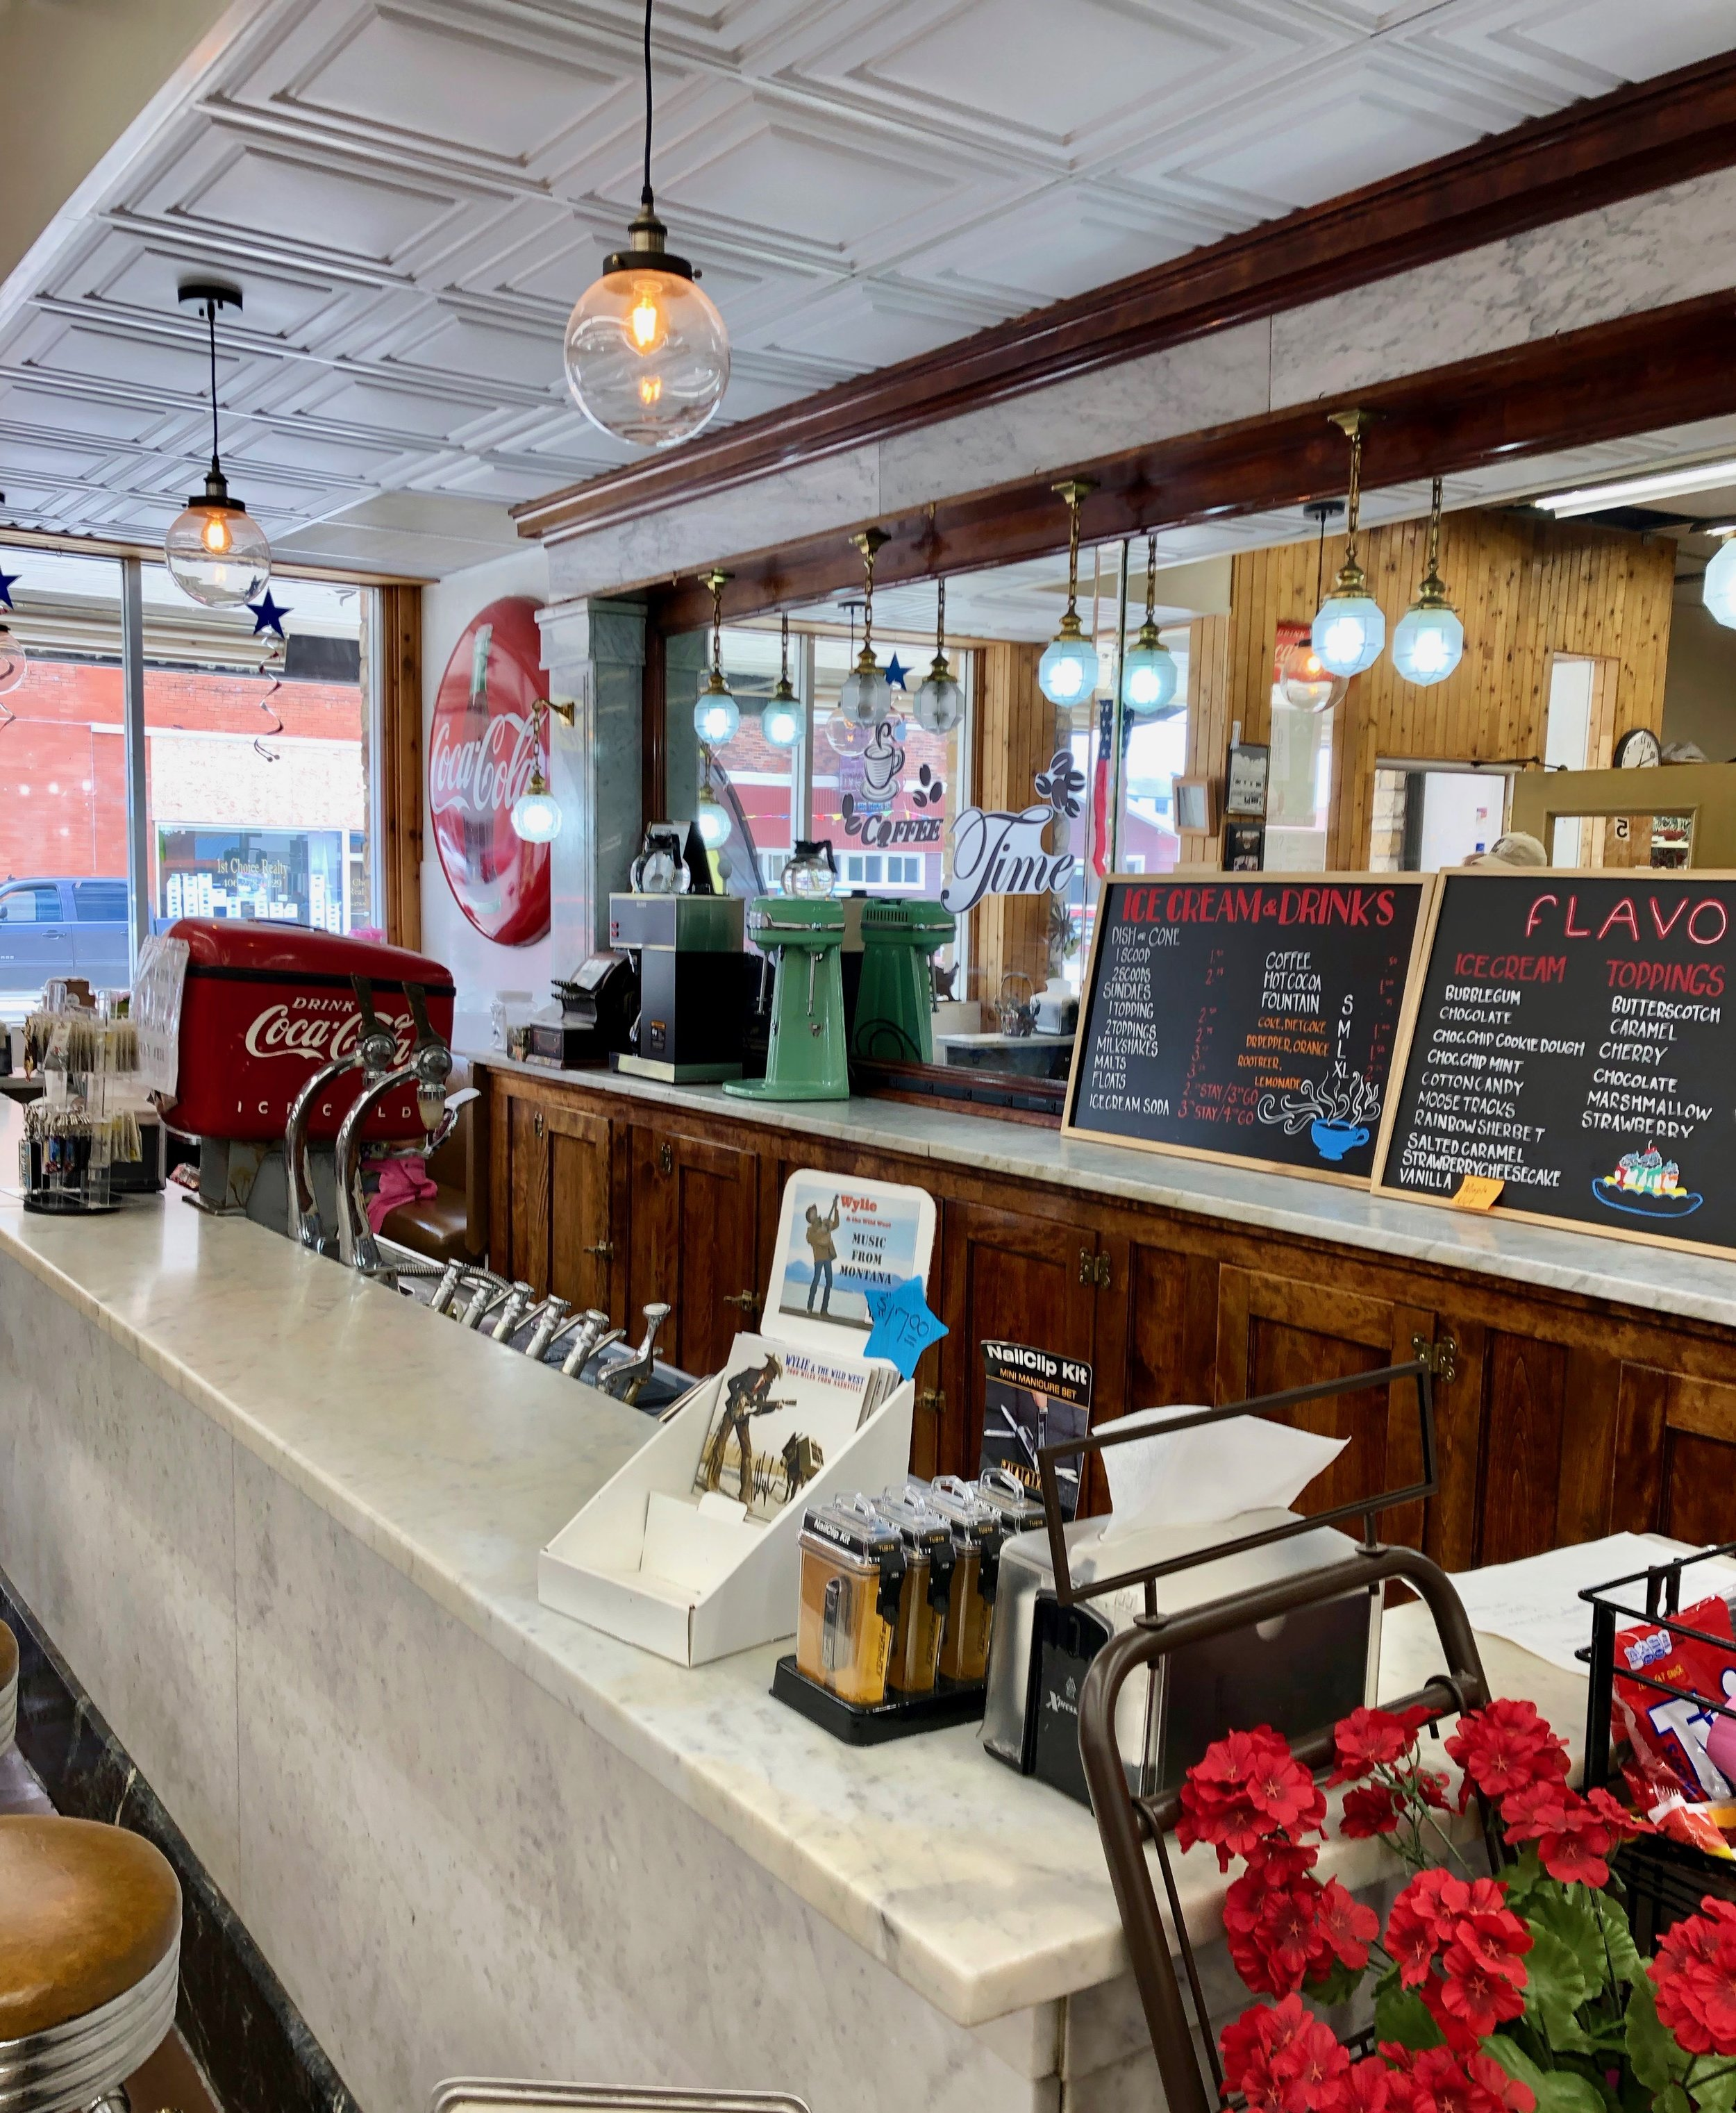 The oldest continuously running soda fountain in the United States, still open at Olson's Drug in Conrad, Montana.